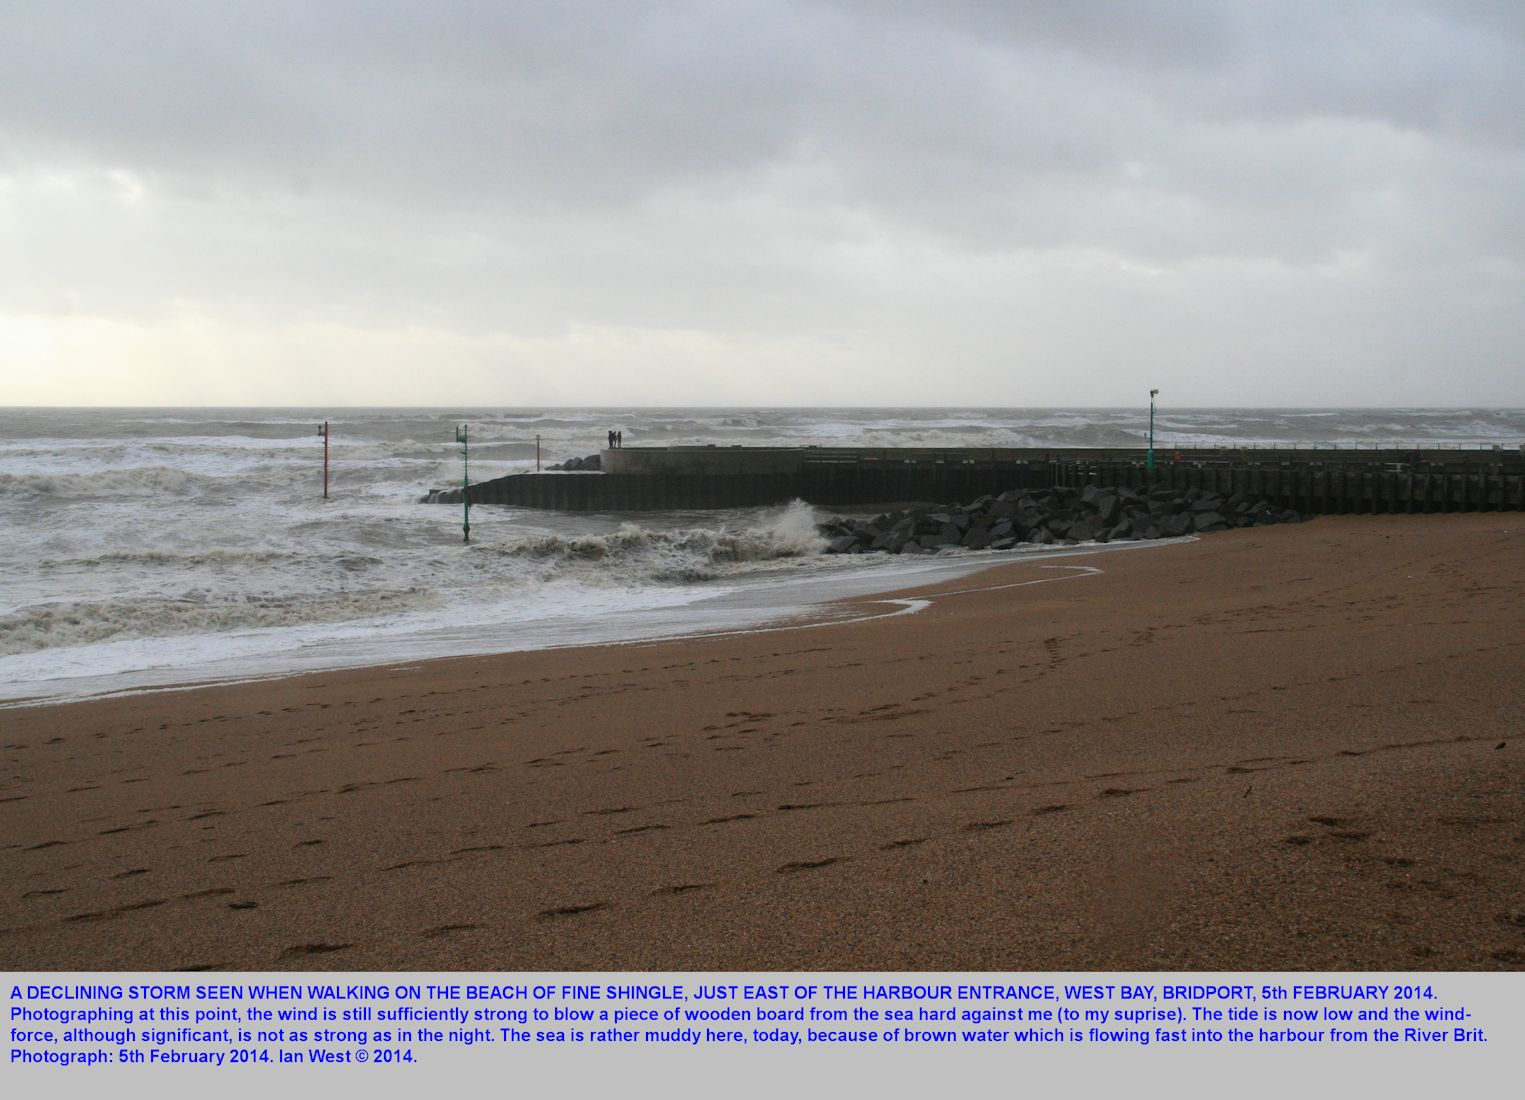 A storm that was bad in the night, now declining and seen from the fine shingle, east of the harbour, West Bay, Bridport, Dorset, 5th February 2014